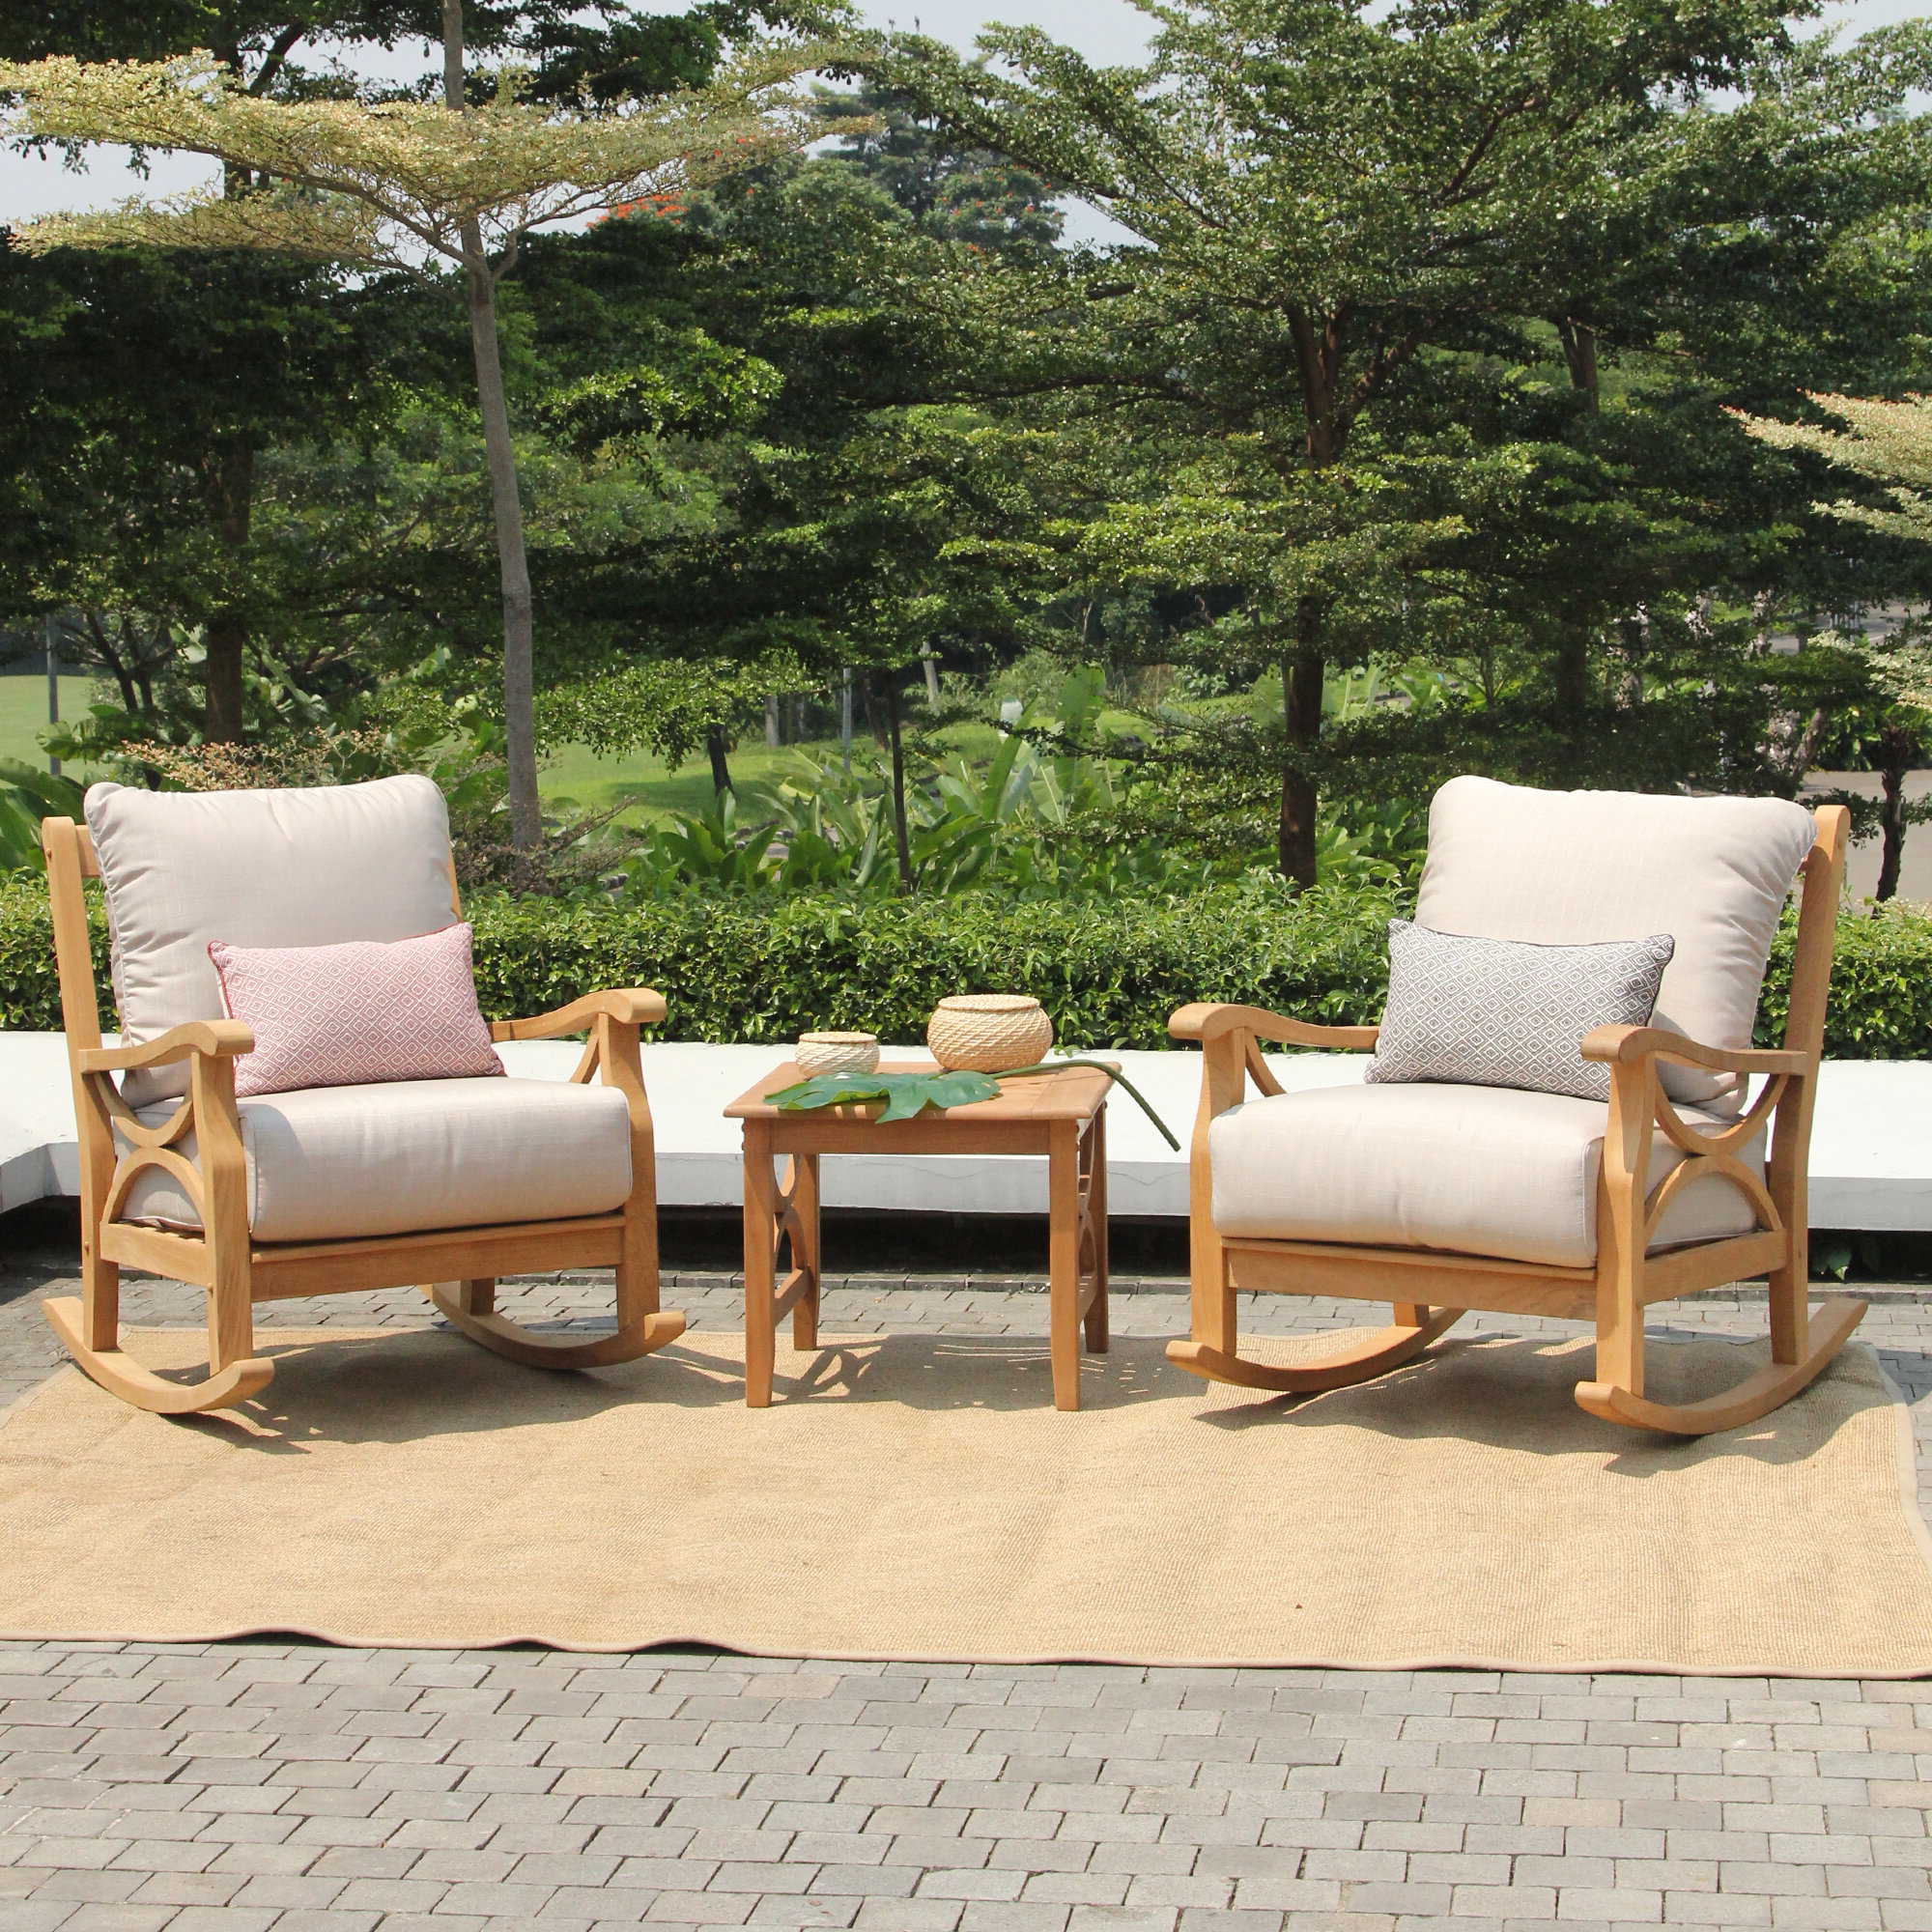 Best And Newest Brunswick 3 Piece Teak Seating Group With Cushions With Brunswick Teak Loveseats With Cushions (View 2 of 20)